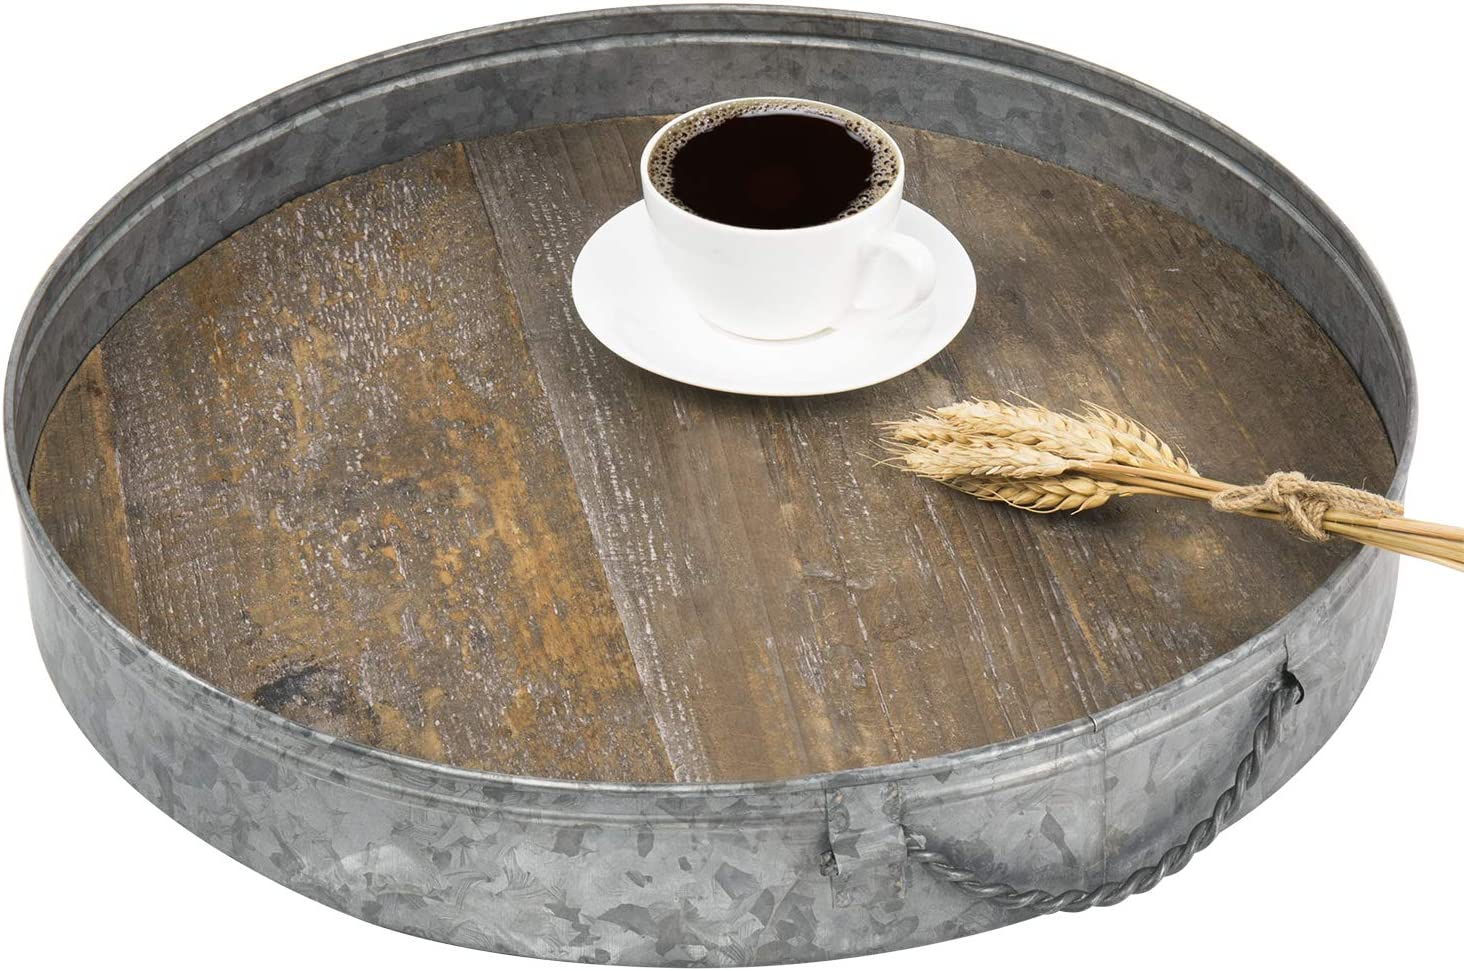 MyGift 17-Inch Round Rustic Galvanized S Wood Fixed price for sale Metal Max 53% OFF Distressed